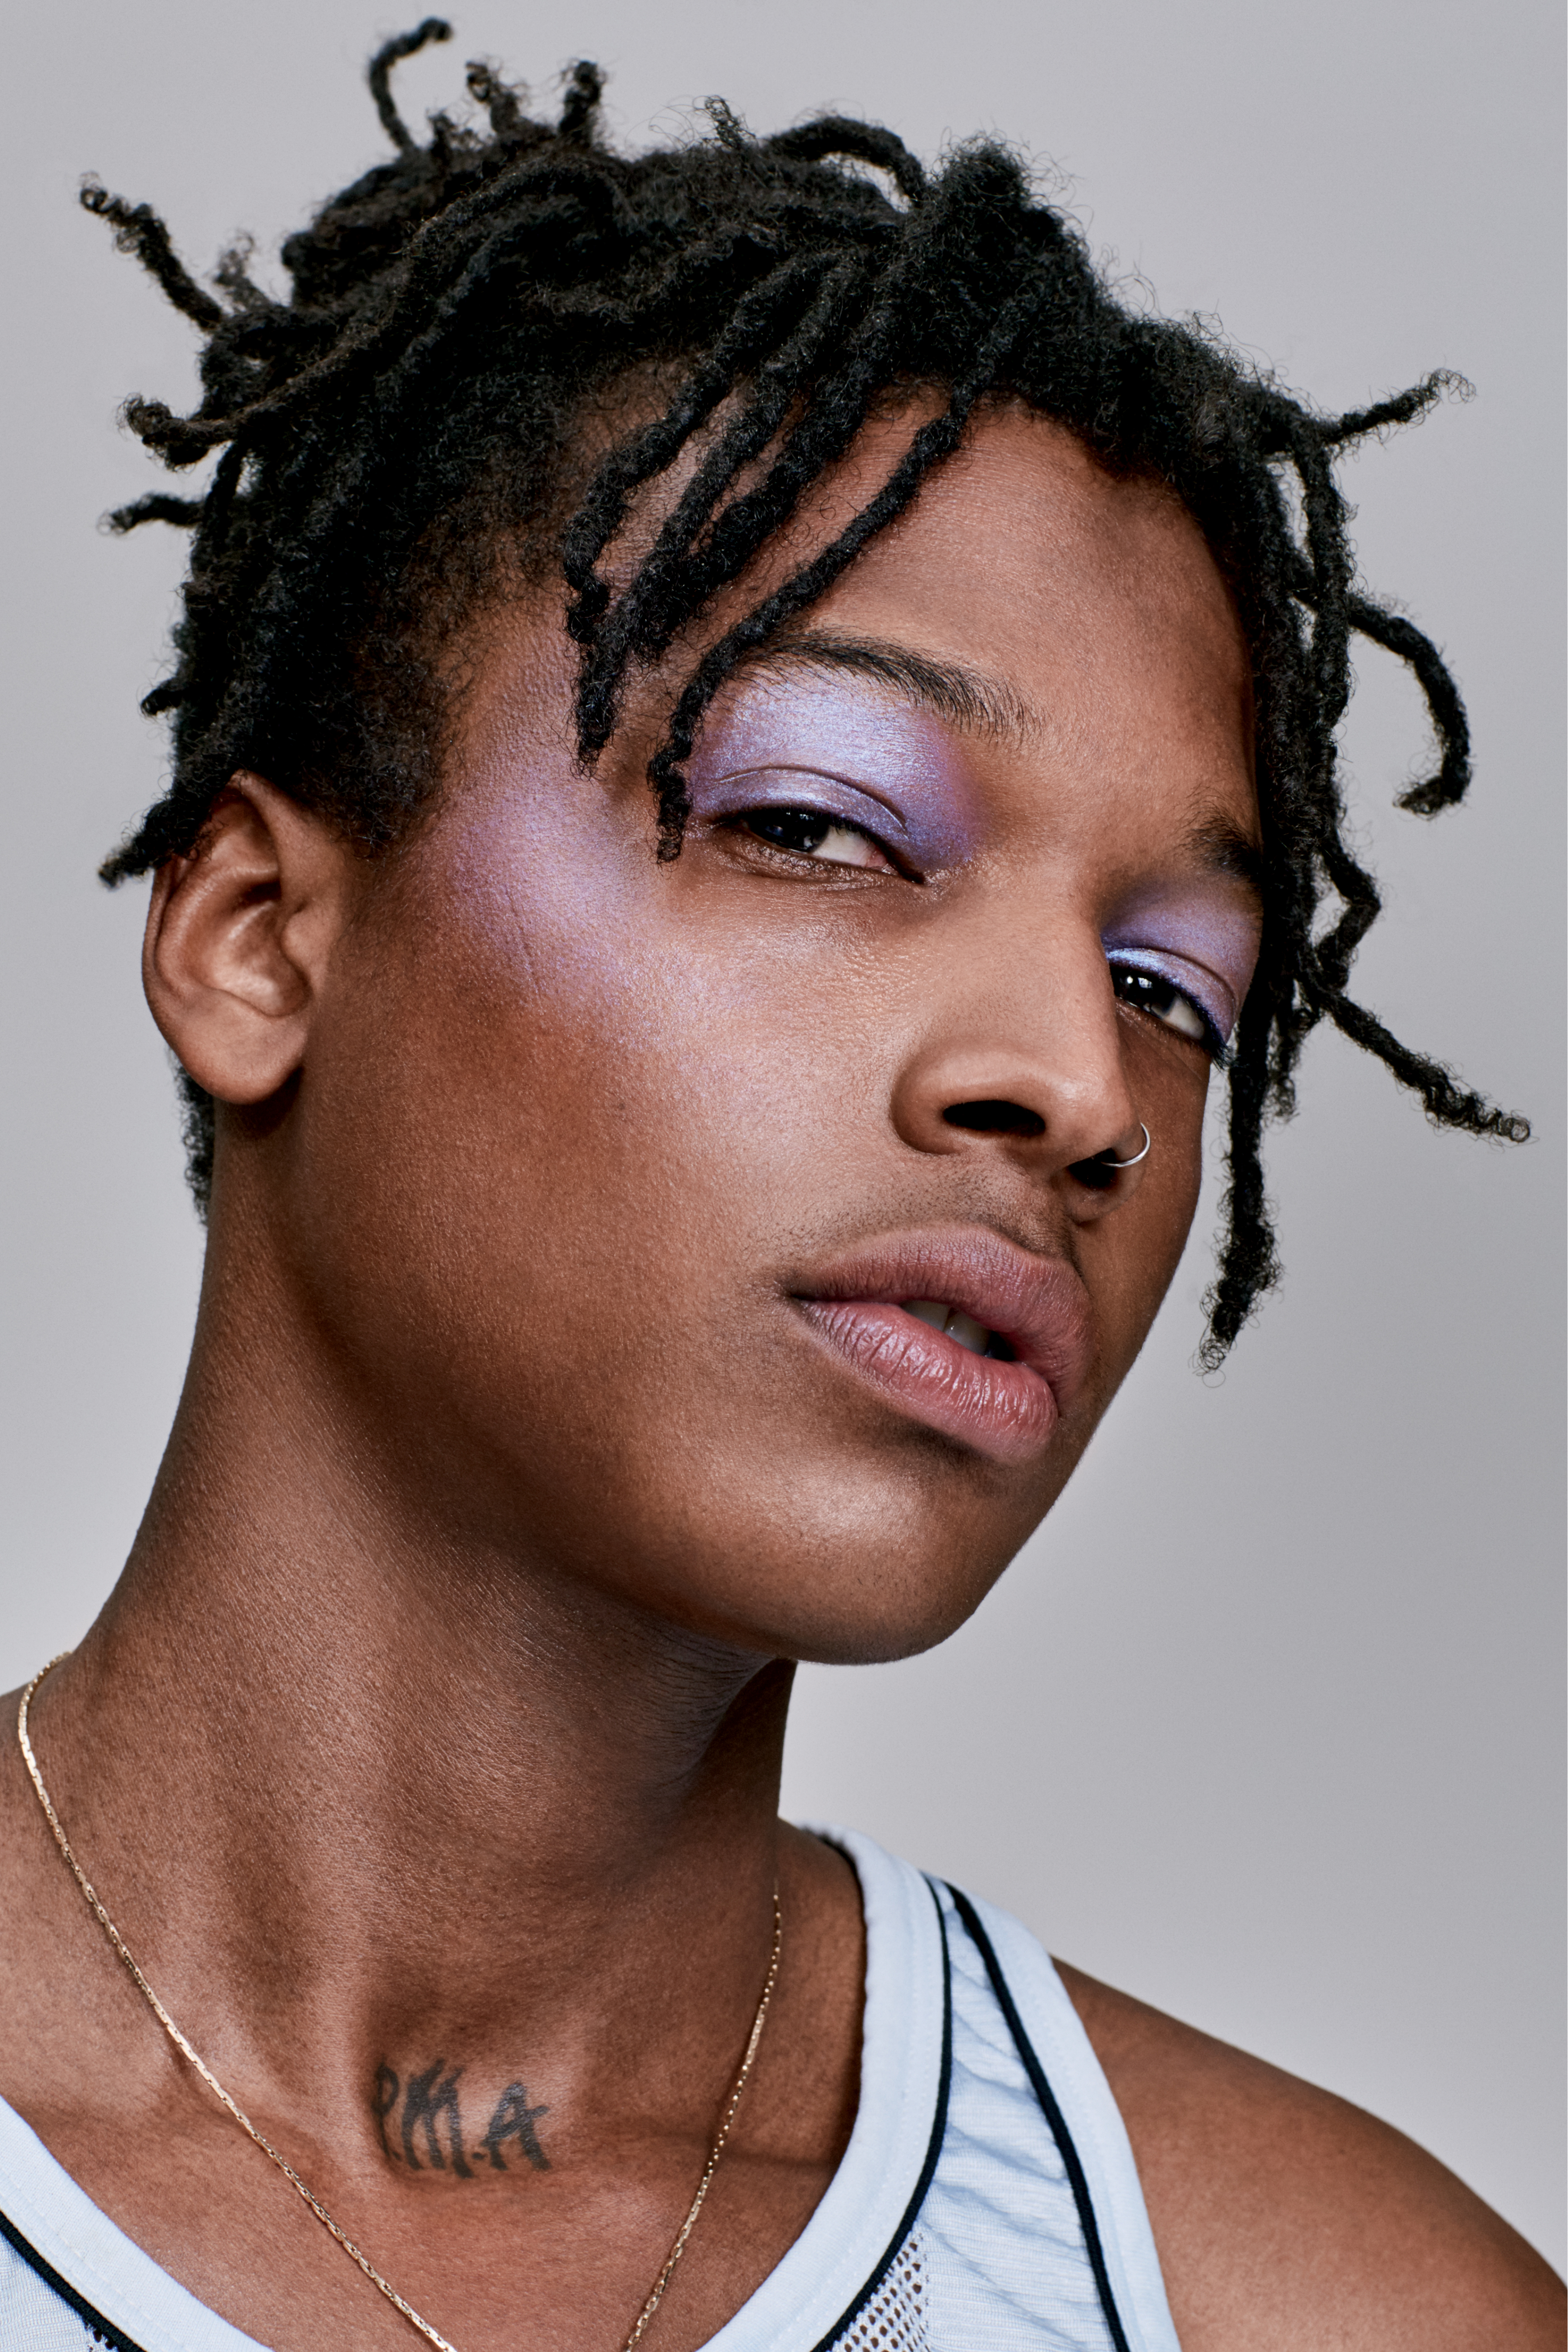 Men makeup is also gaining momentum in   recent times